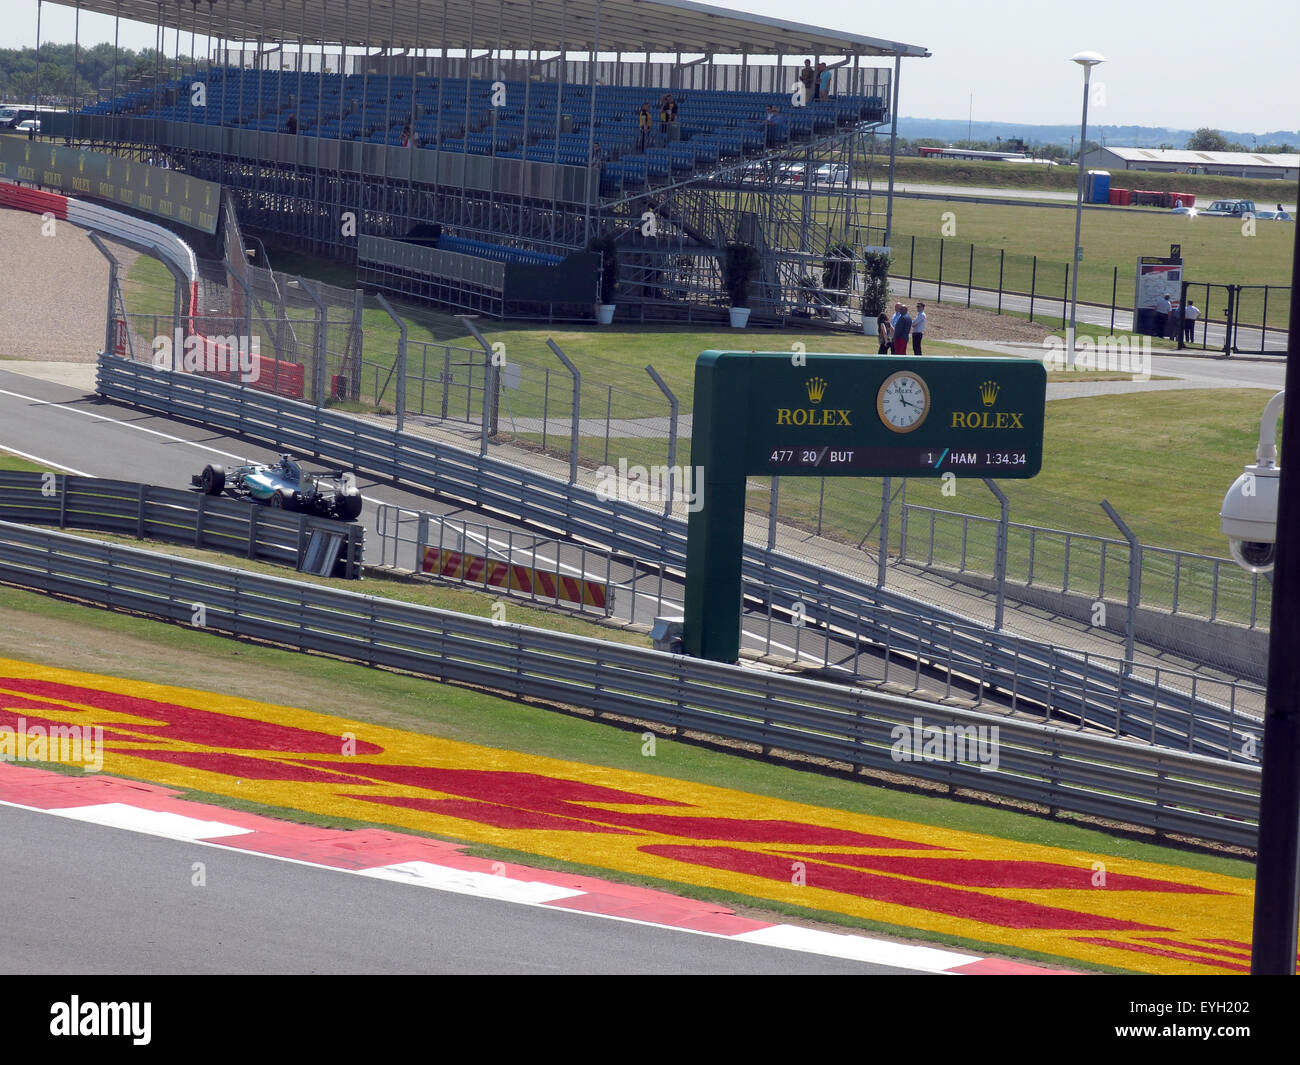 Silverstone F1 British Grand Prix GP England -Pit lane - Stock Image